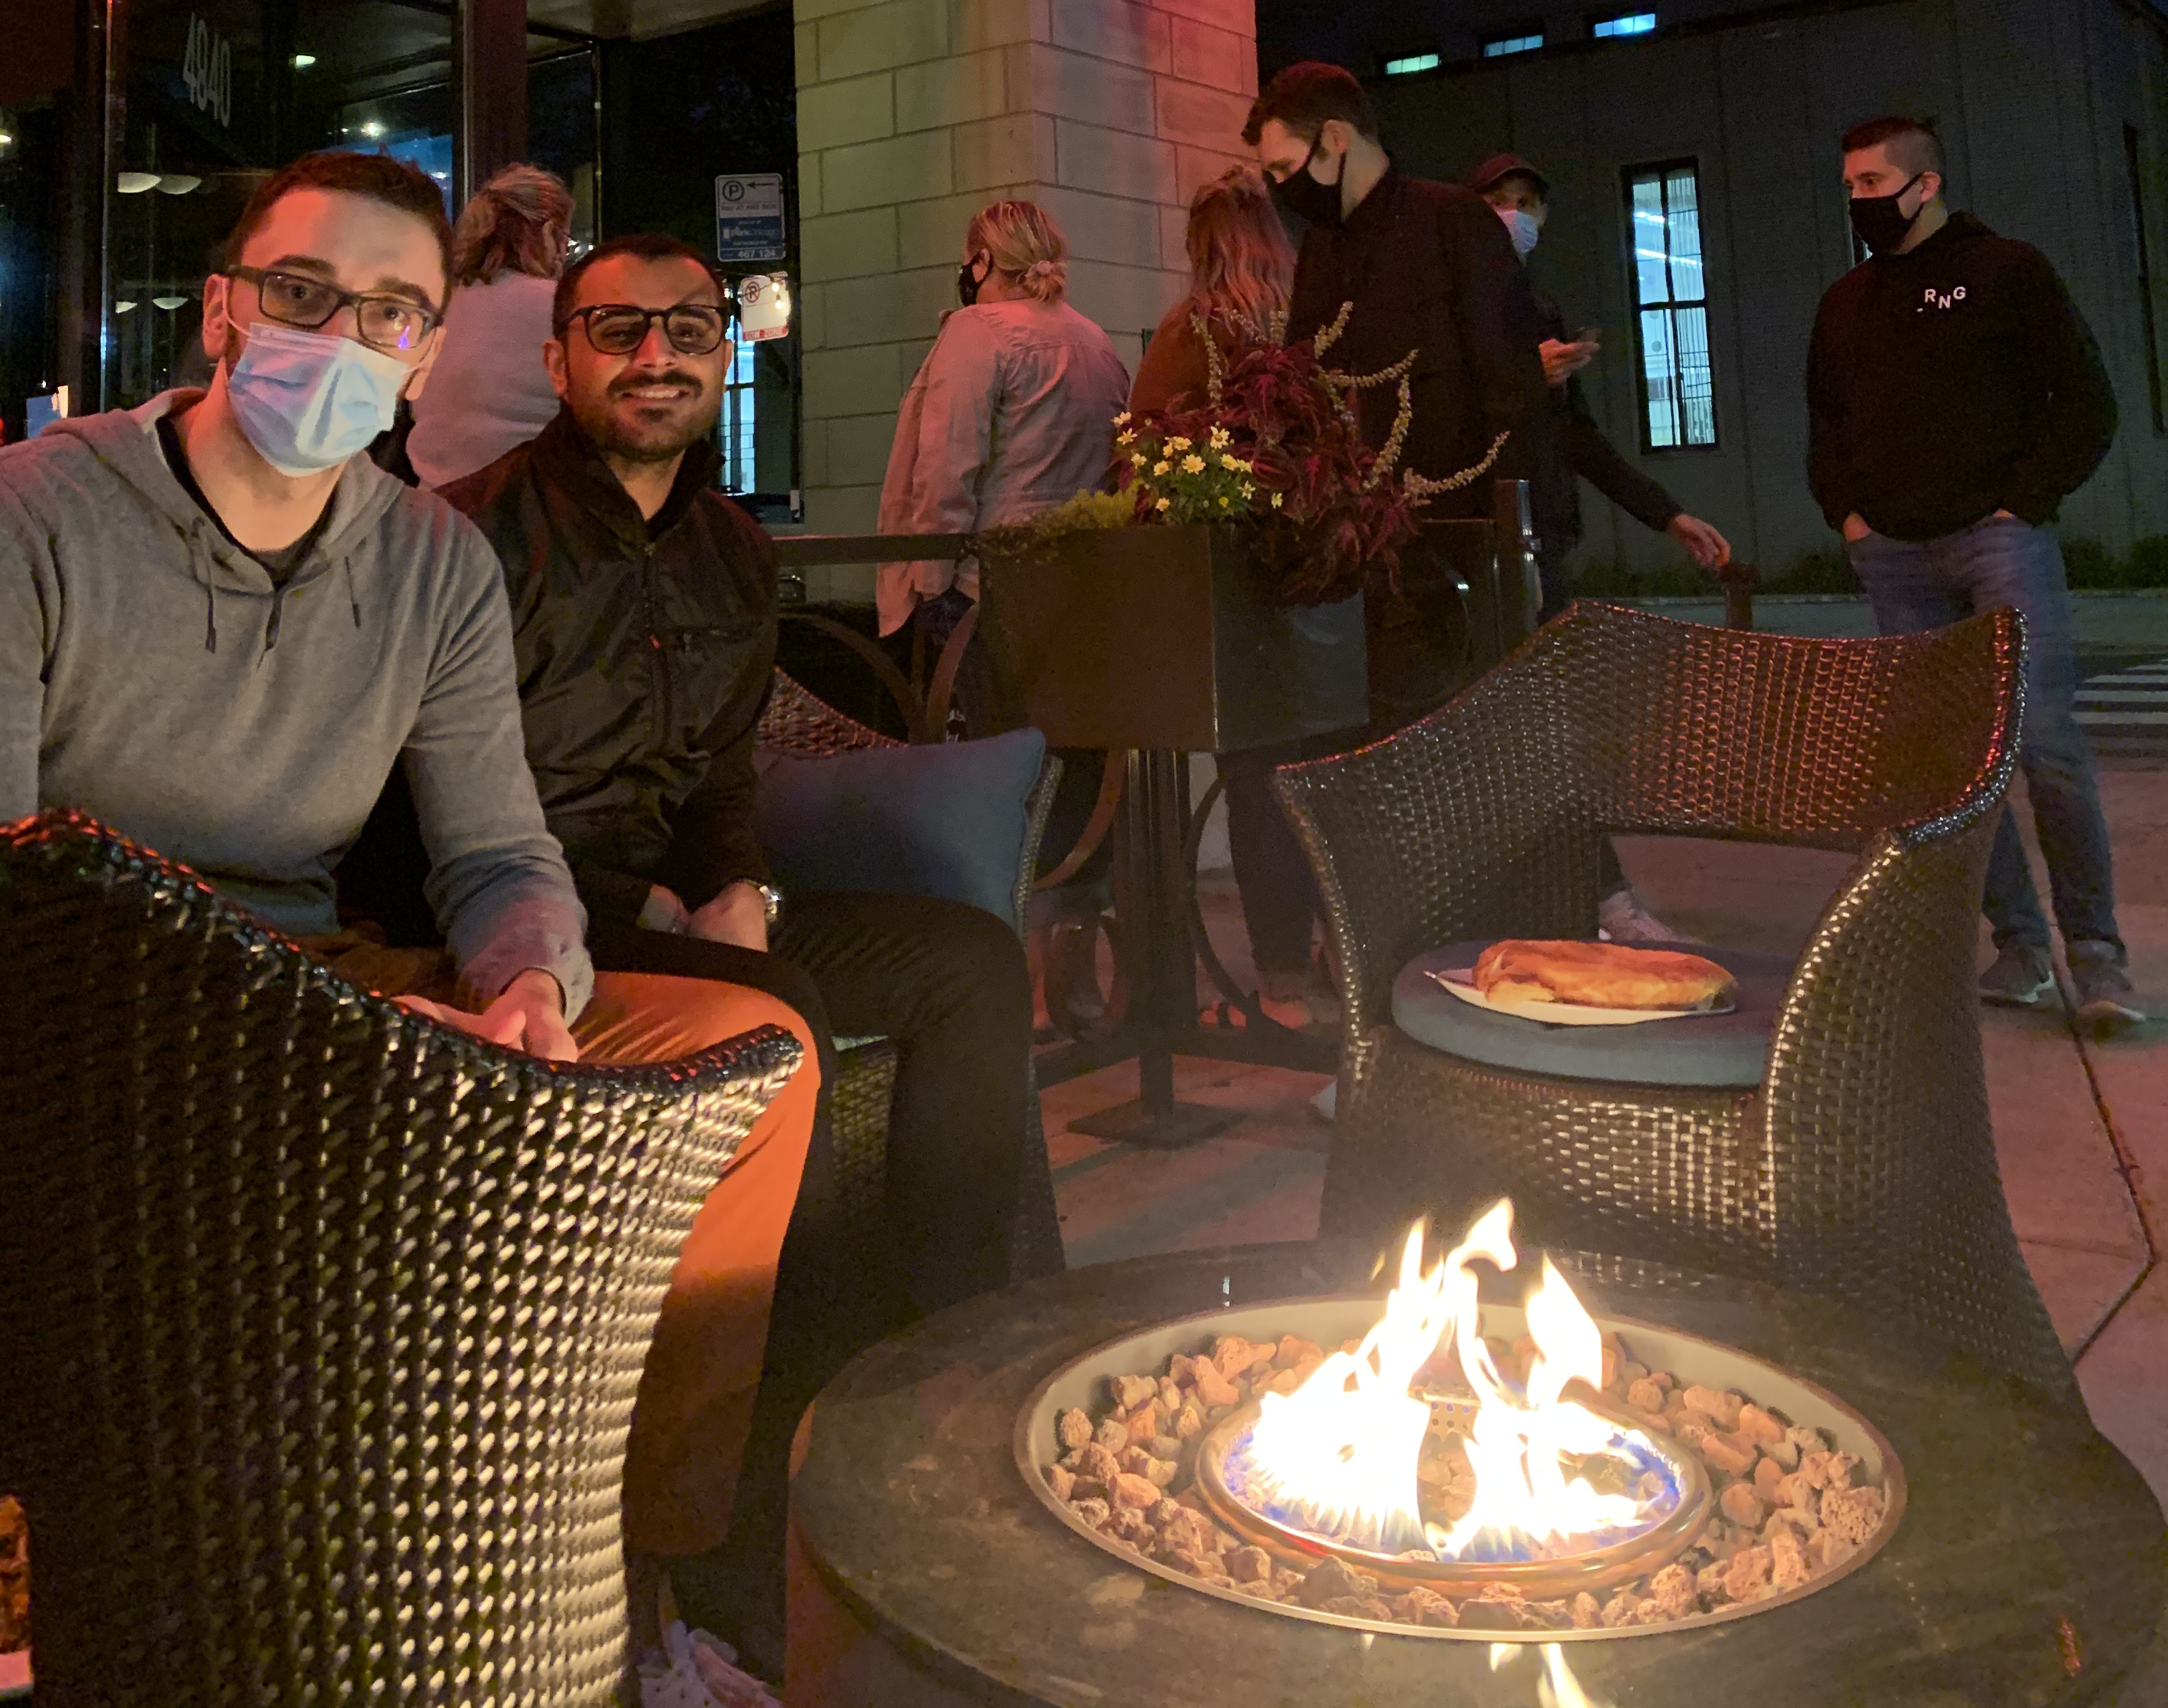 Two people wearing masks at night around a fire pit.